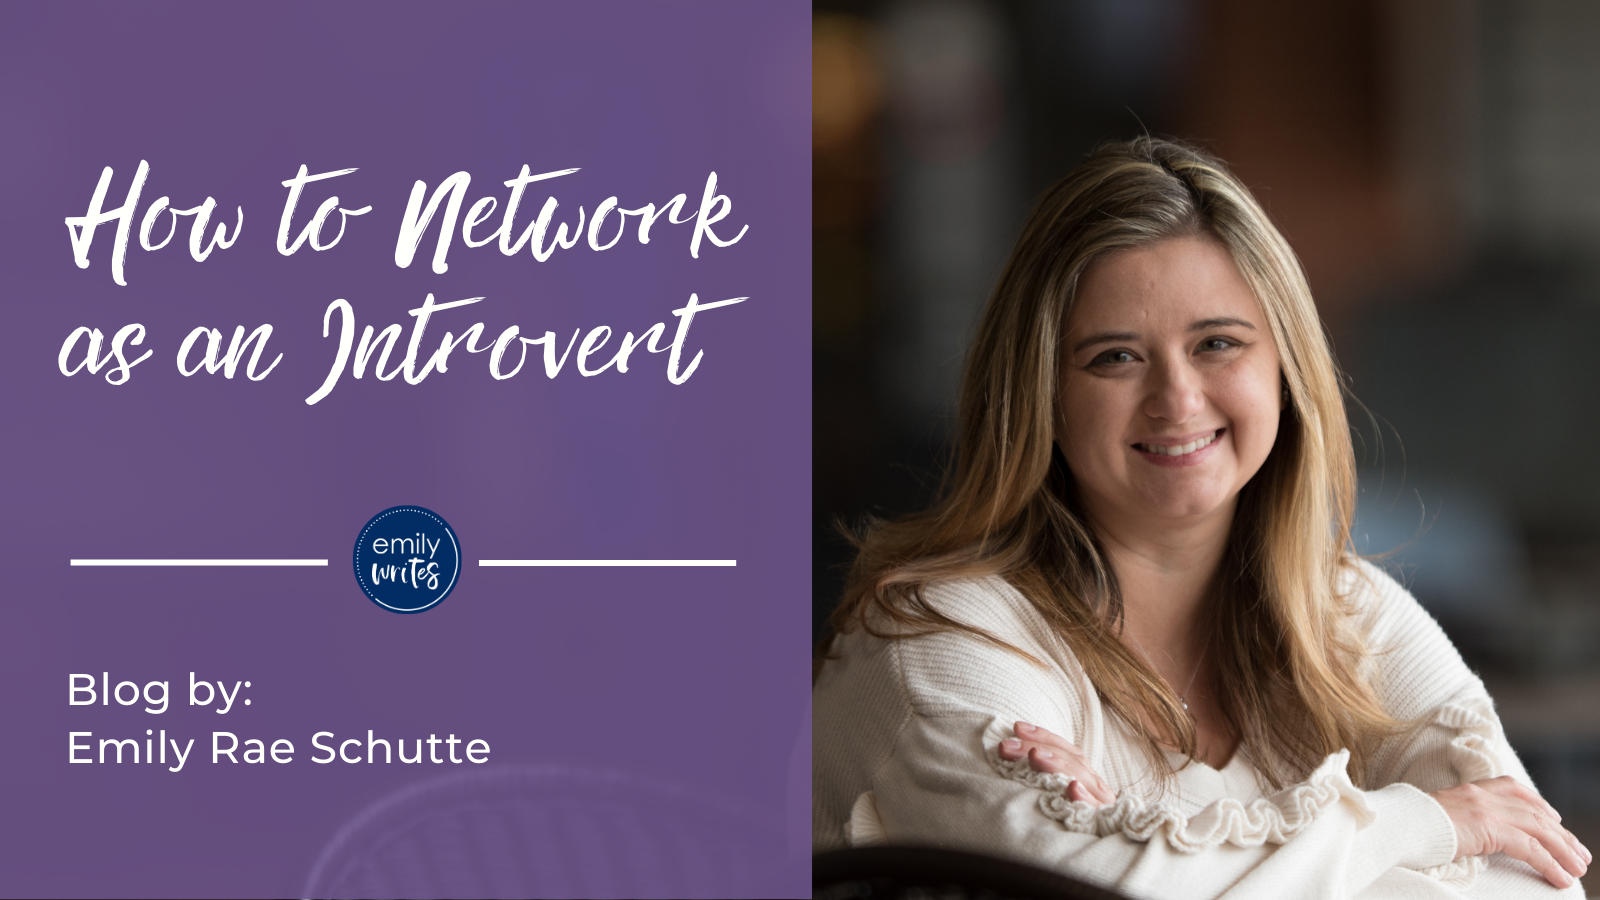 I'm sharing tips about how I network as an introvert. I hope that they'll be helpful in your entrepreneurship journey!